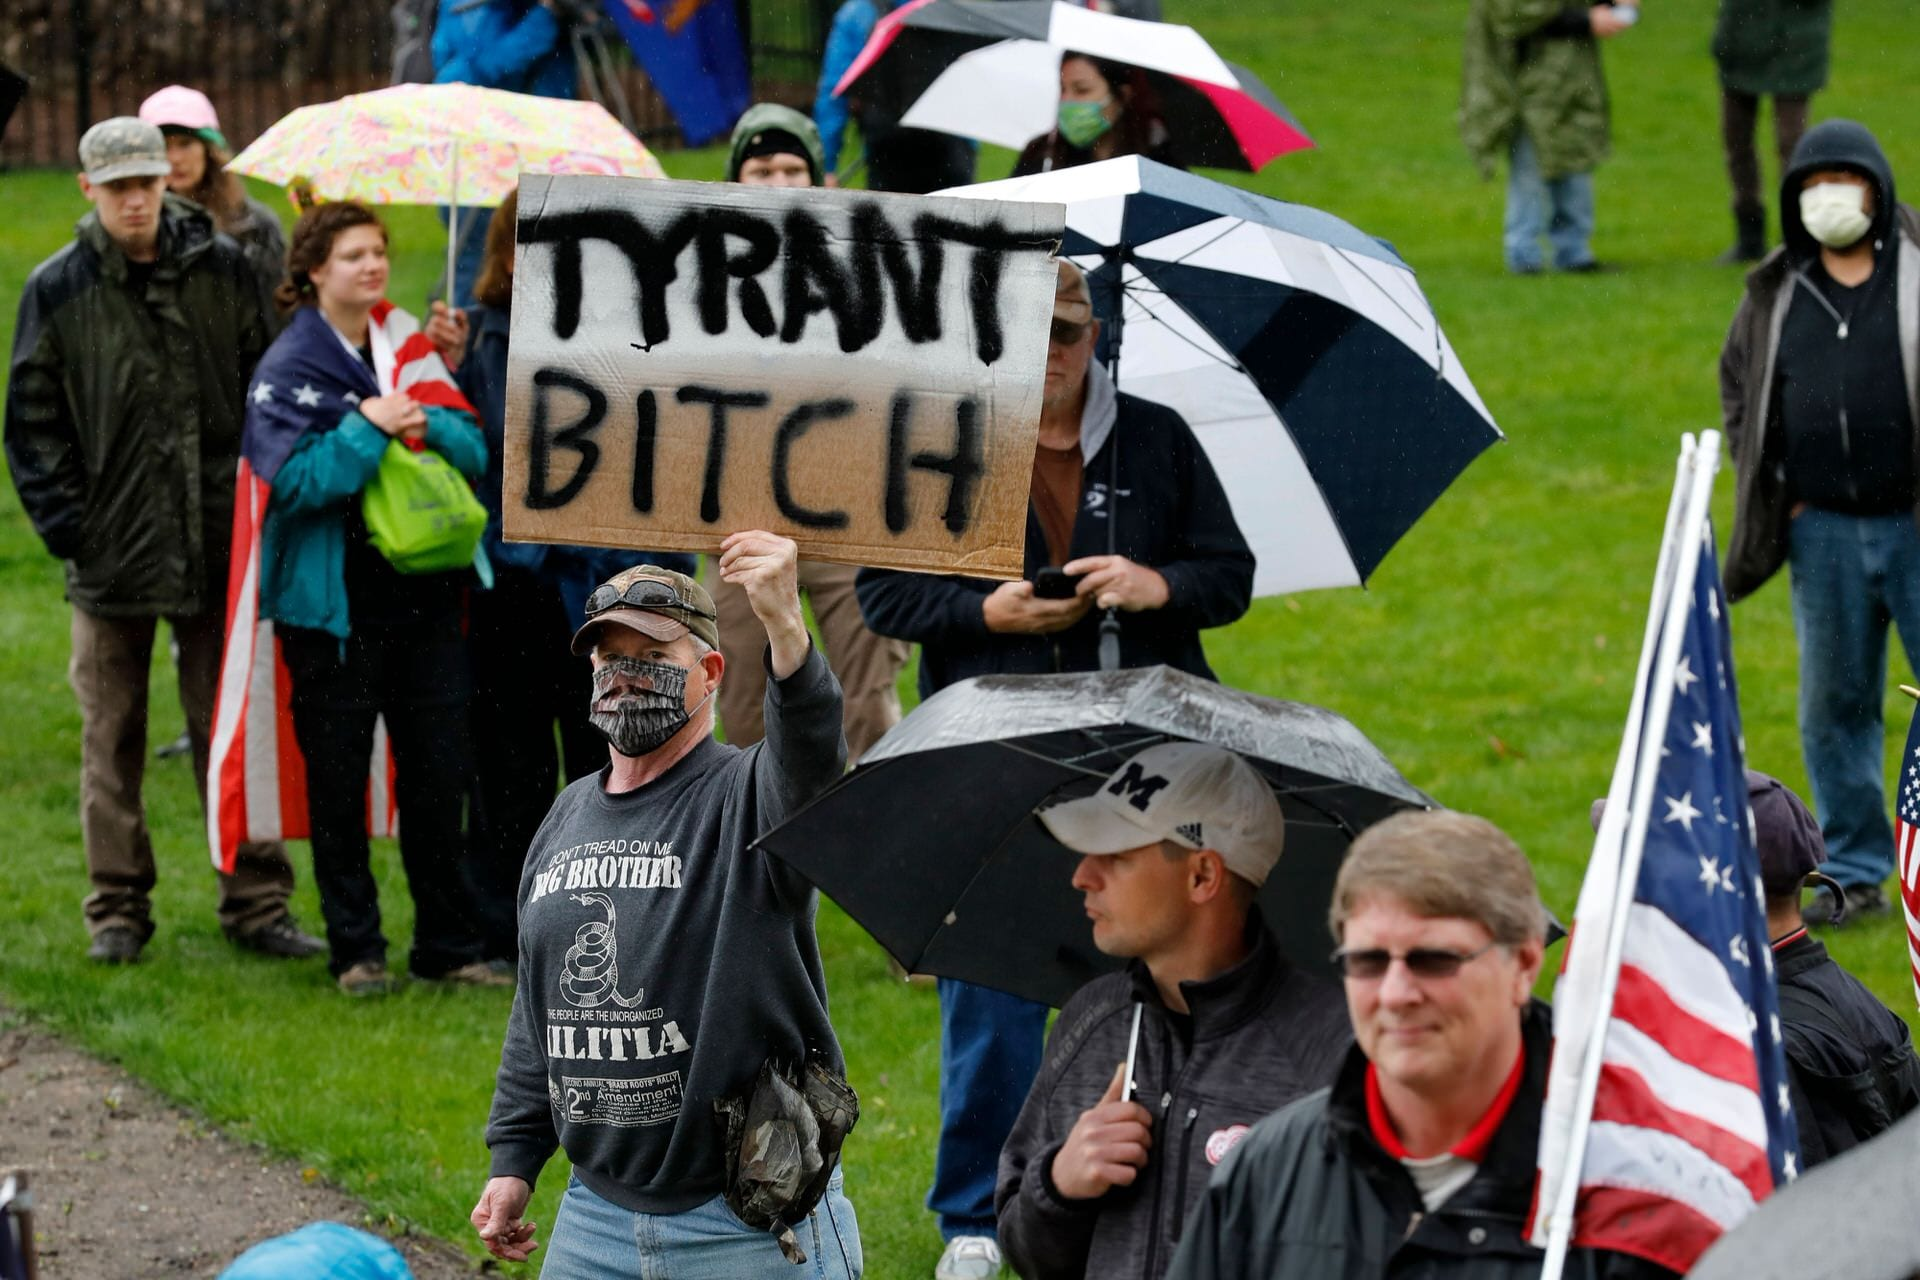 """A man holds a sign with """"tyrant bitch"""" written on it."""